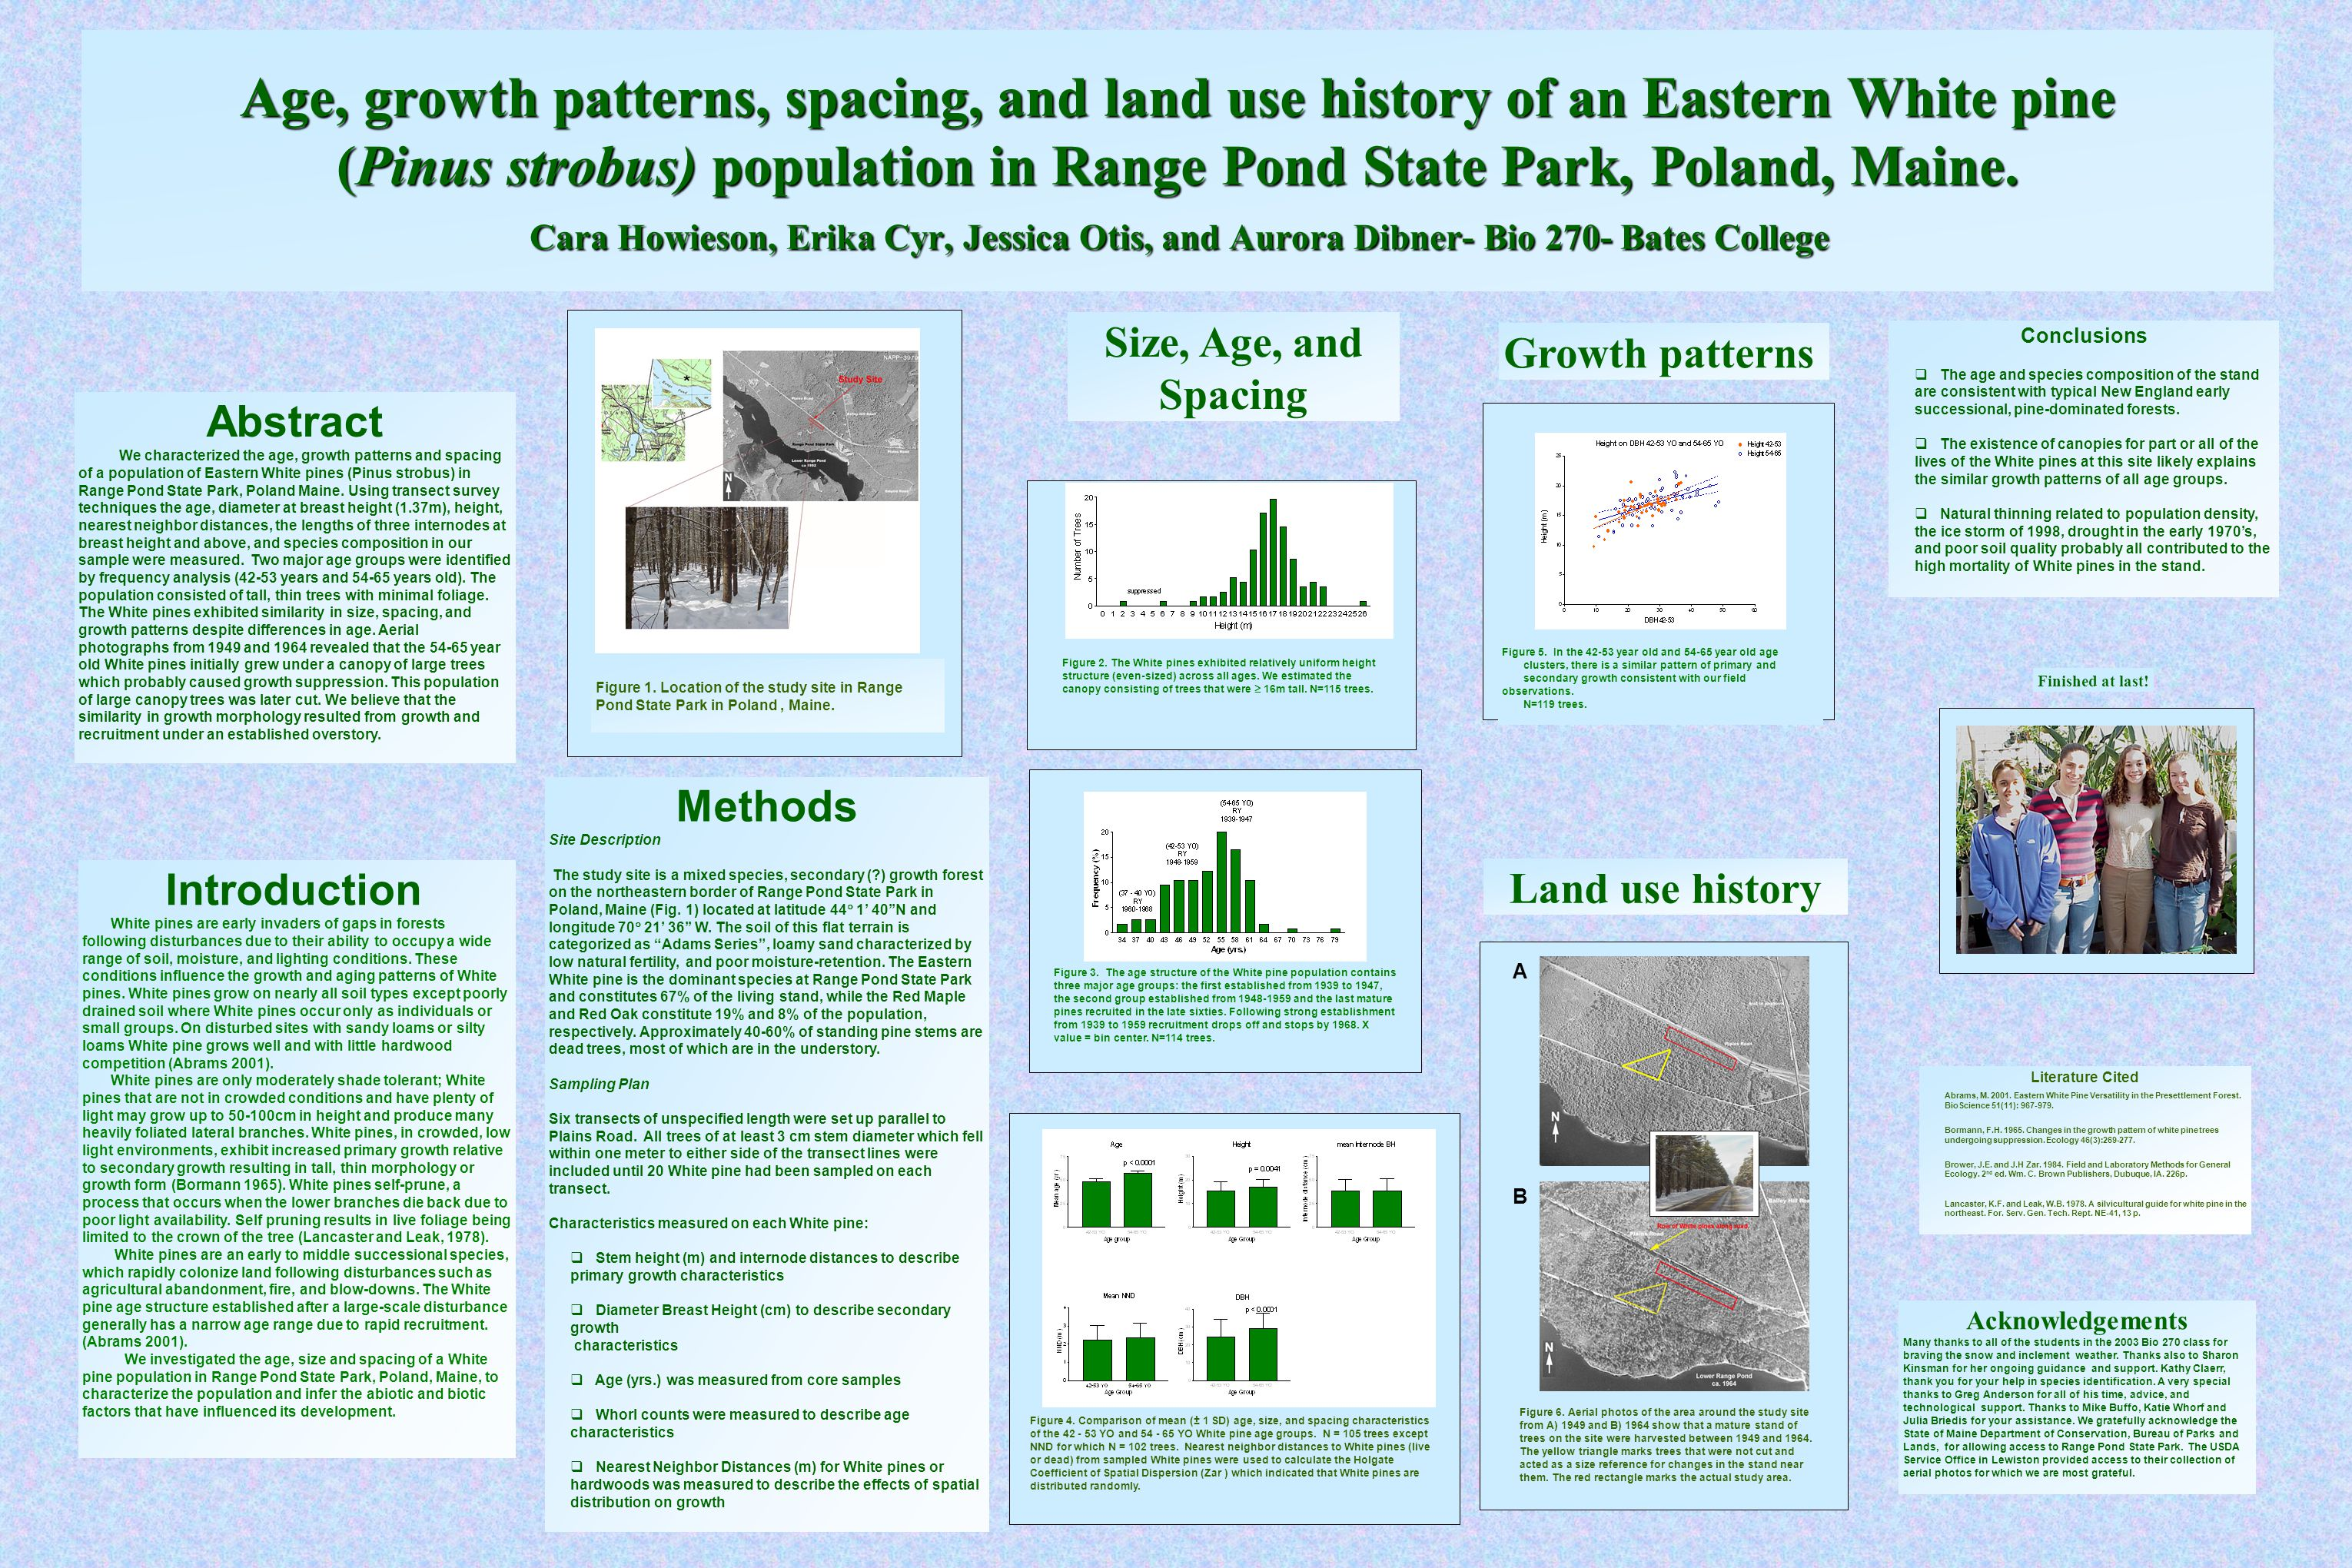 Age, growth patterns, spacing, and land use history of an Eastern White pine (Pinus strobus) population in Range Pond State Park, Poland, Maine. Cara